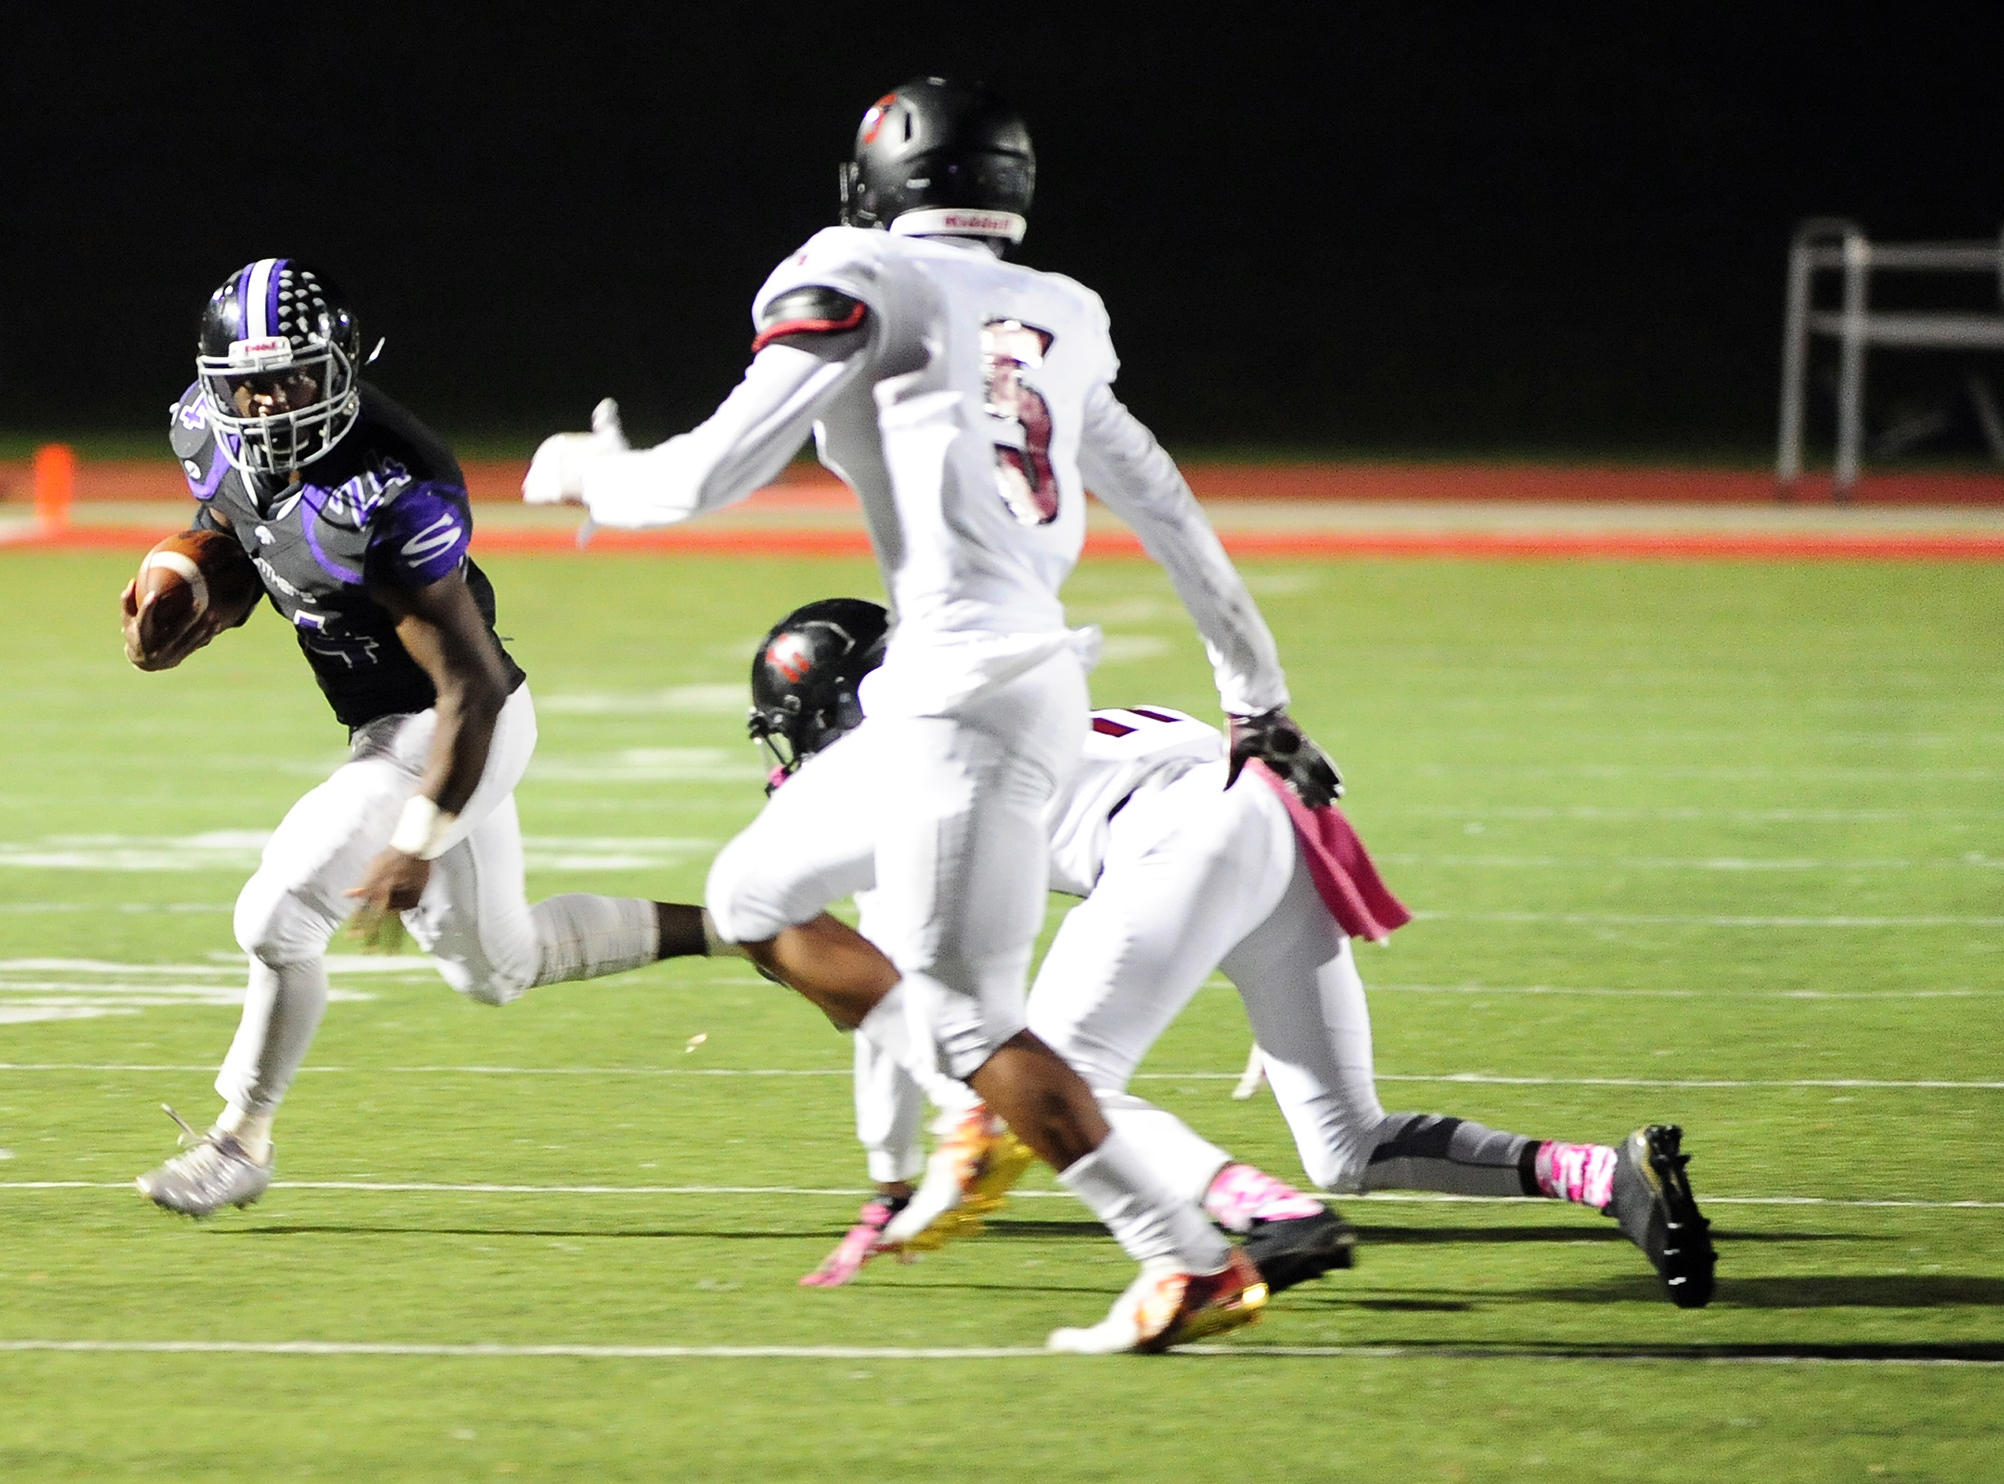 NICK INGRAM/Citizen photo Park Hill South senior running back Emanuel Butler, left, sizes up a pair of Lee's Summit North defenders during a game Friday, Oct. 7 at Park Hill District Stadium in Kansas City, Mo. Park Hill South won 40-26.